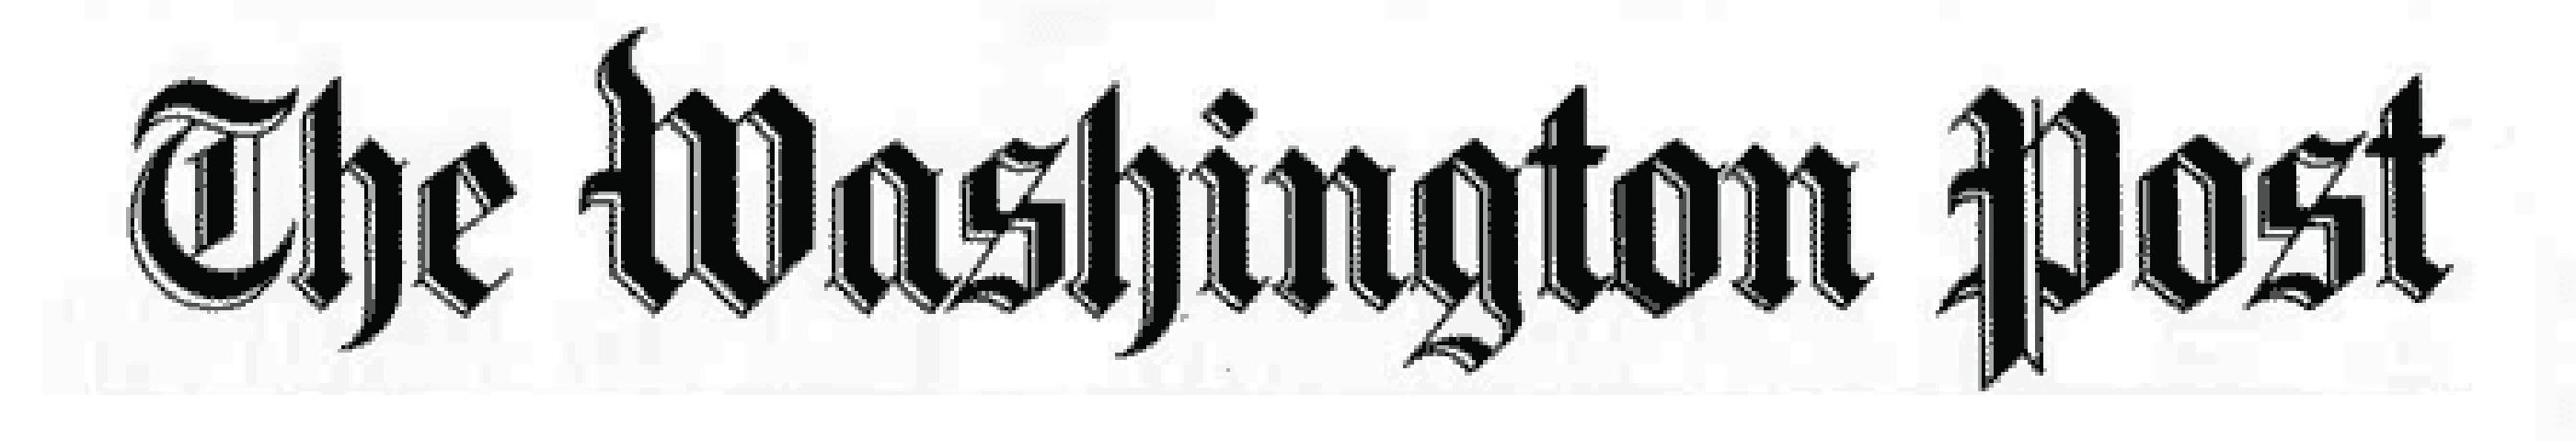 http://www.internet-sicherheit.de/uploads/pics/Washington-Post-logo.jpg